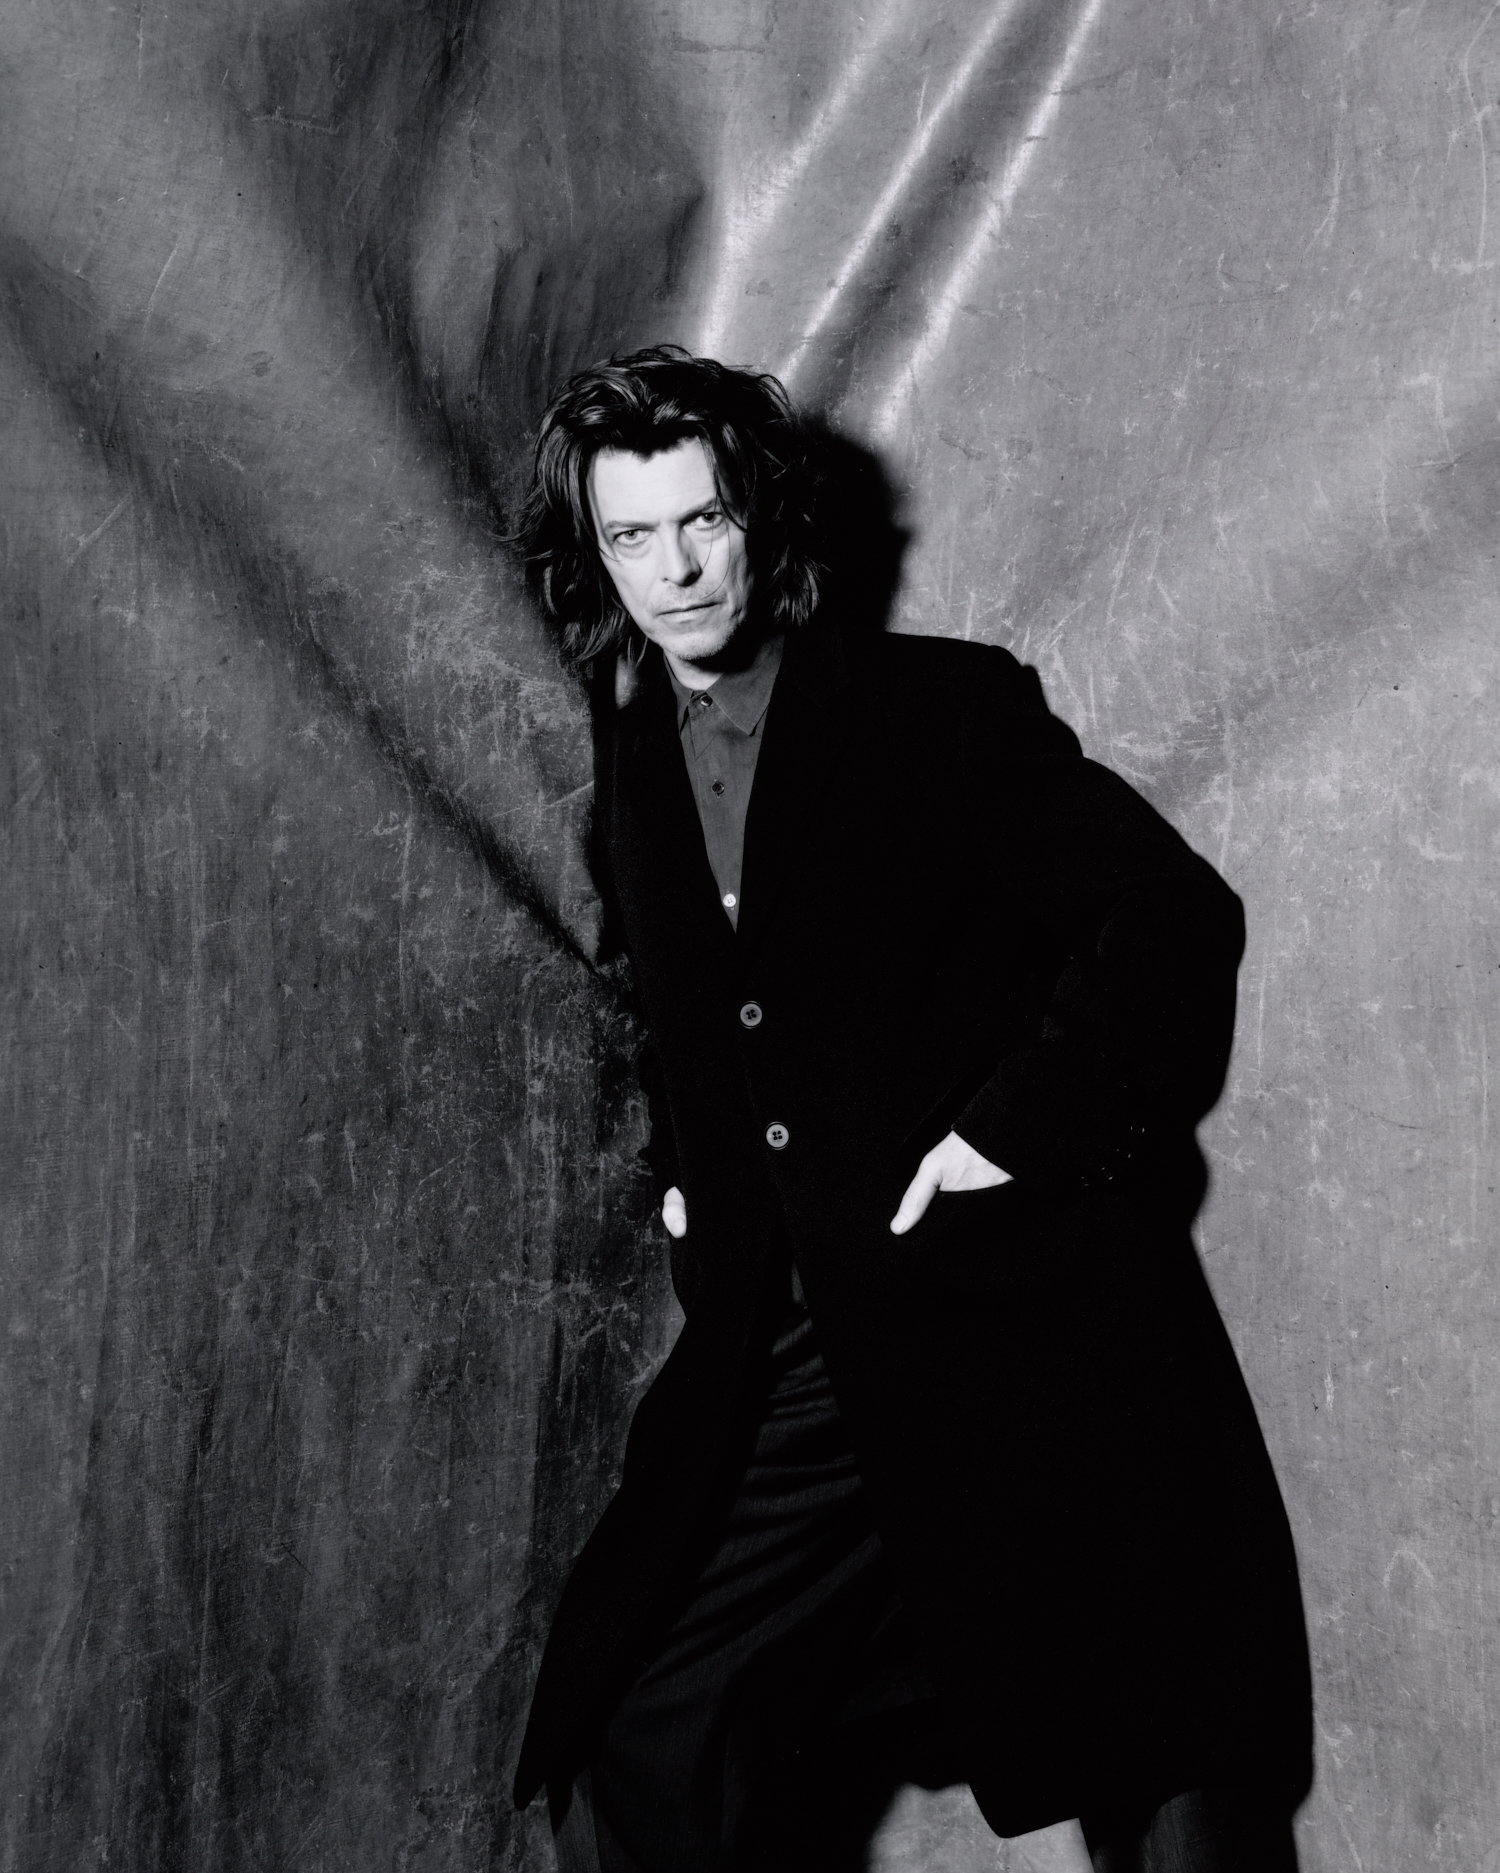 David Bowie (D) , New York, 1999 Gelatin silver print © The Irving Penn Foundation